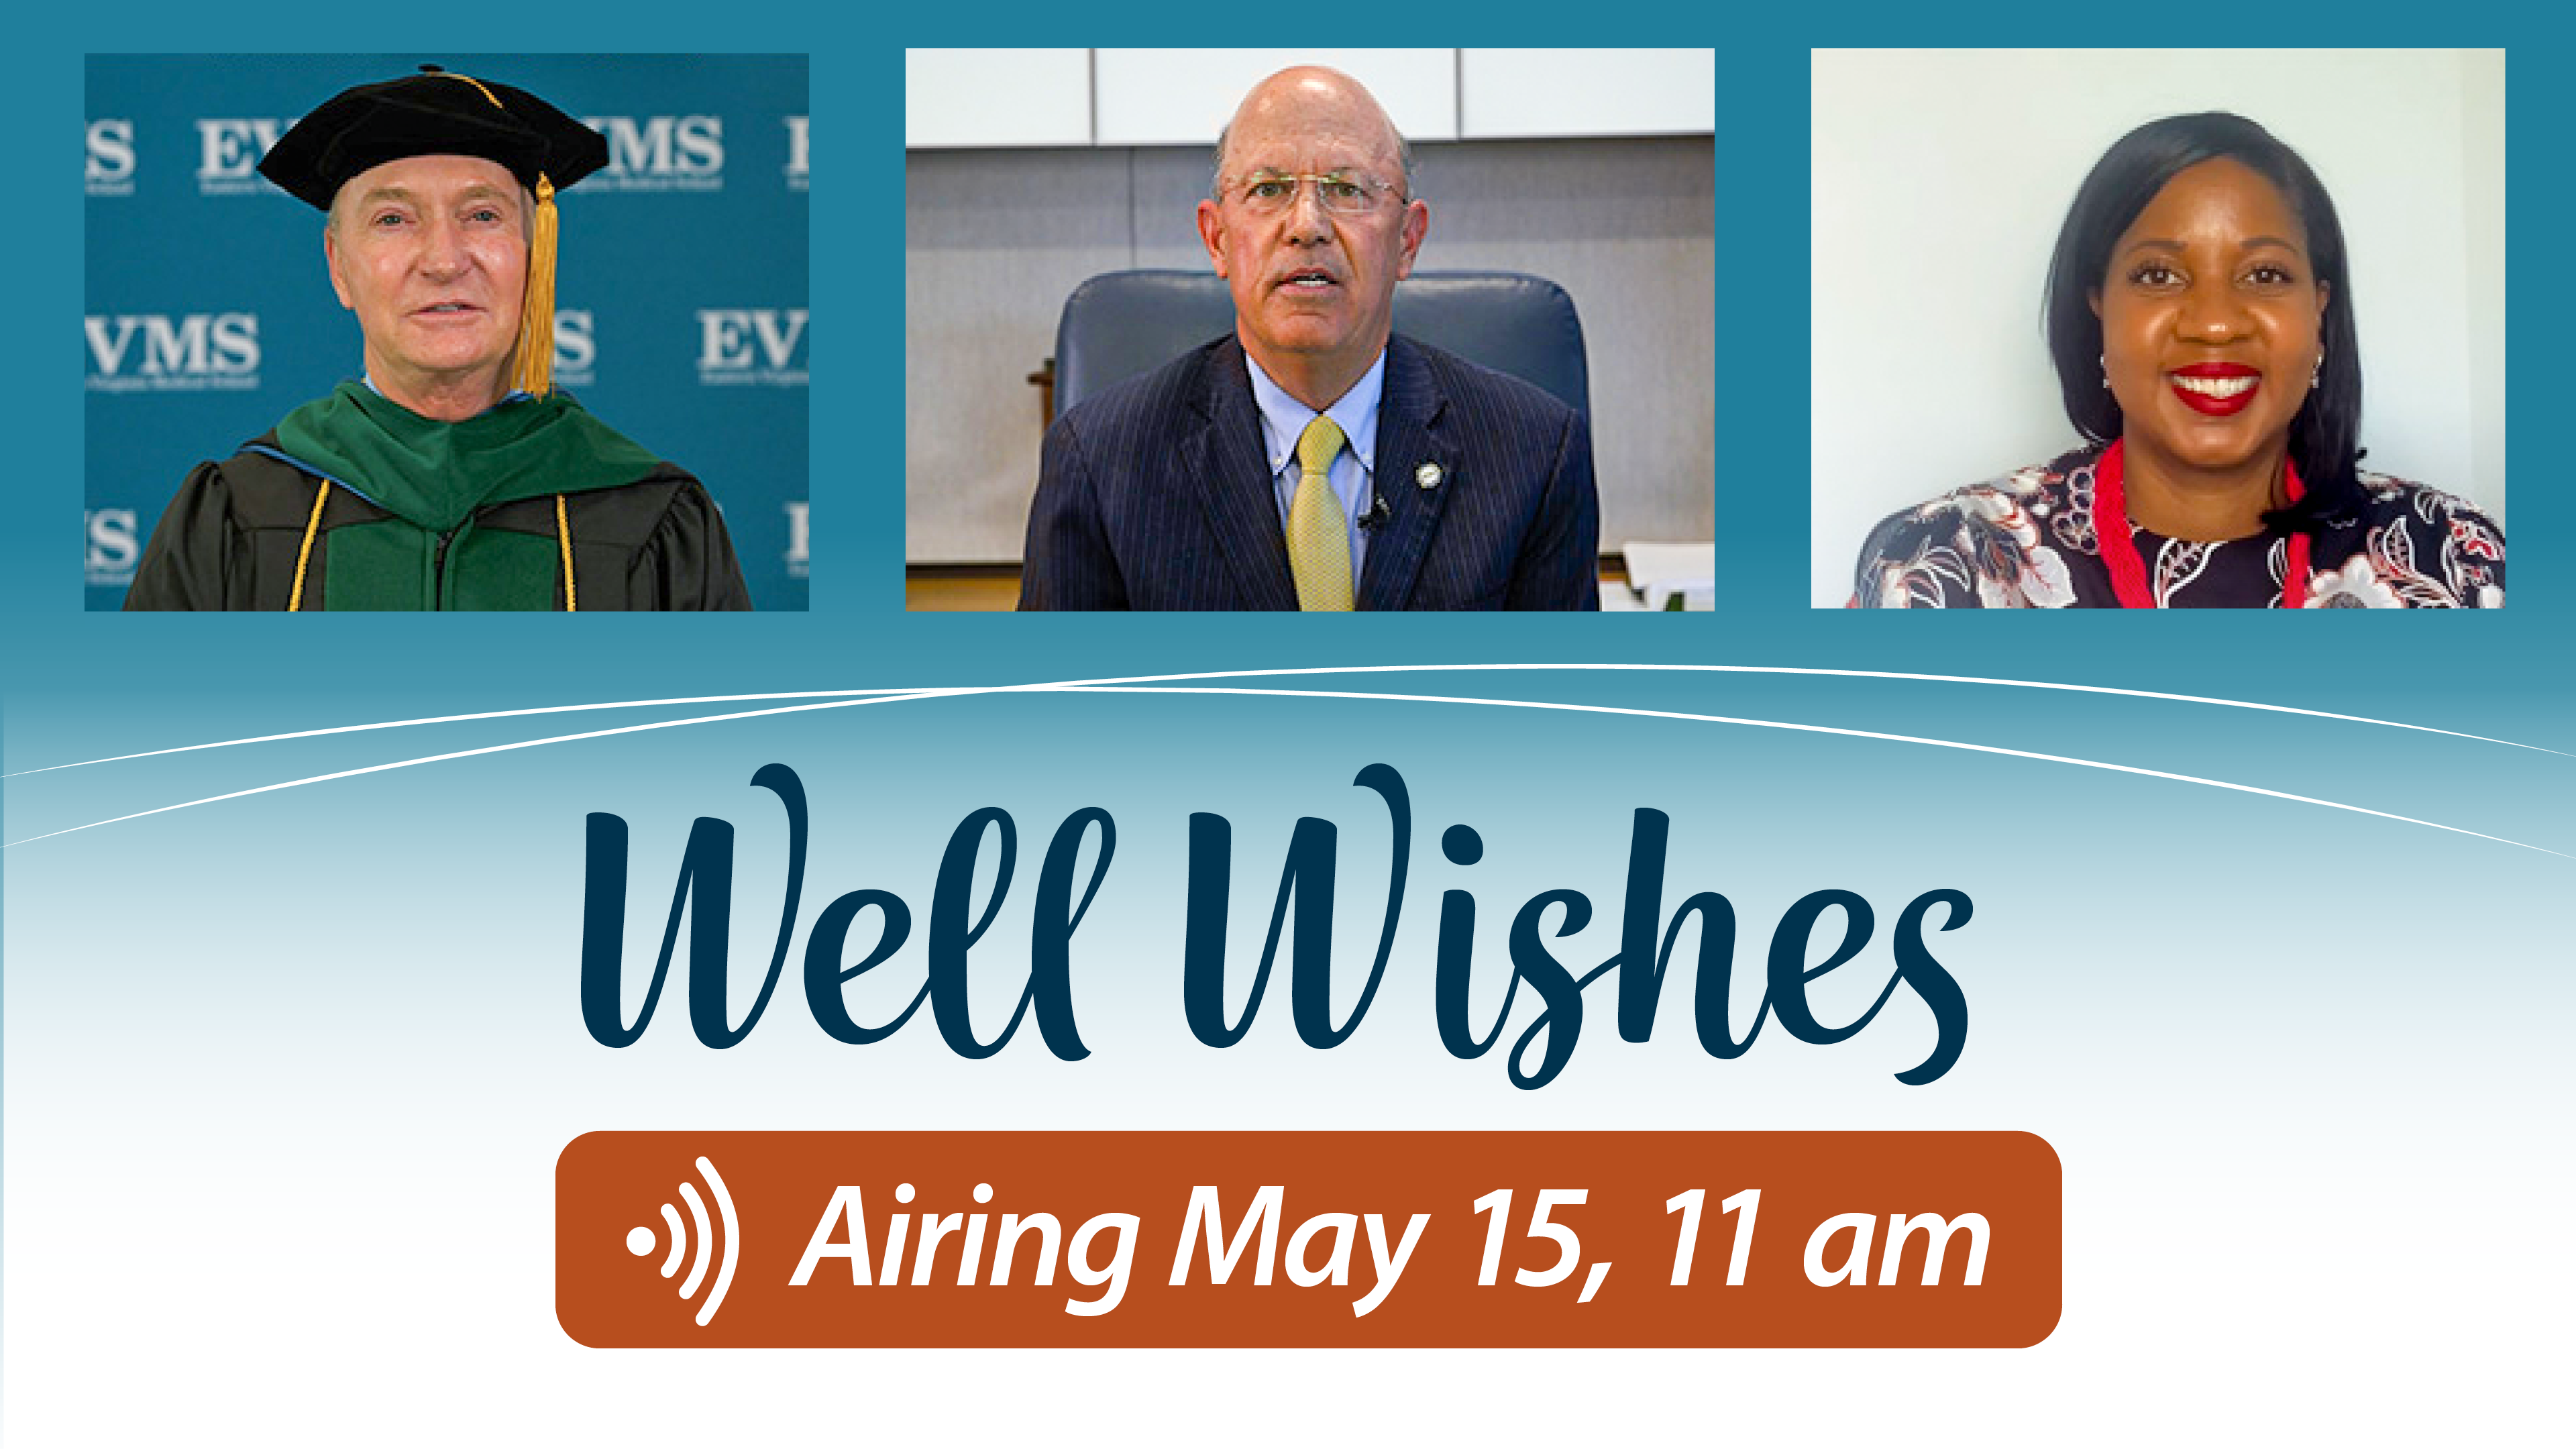 Well Wishes, Airing May 15, 11 a.m.